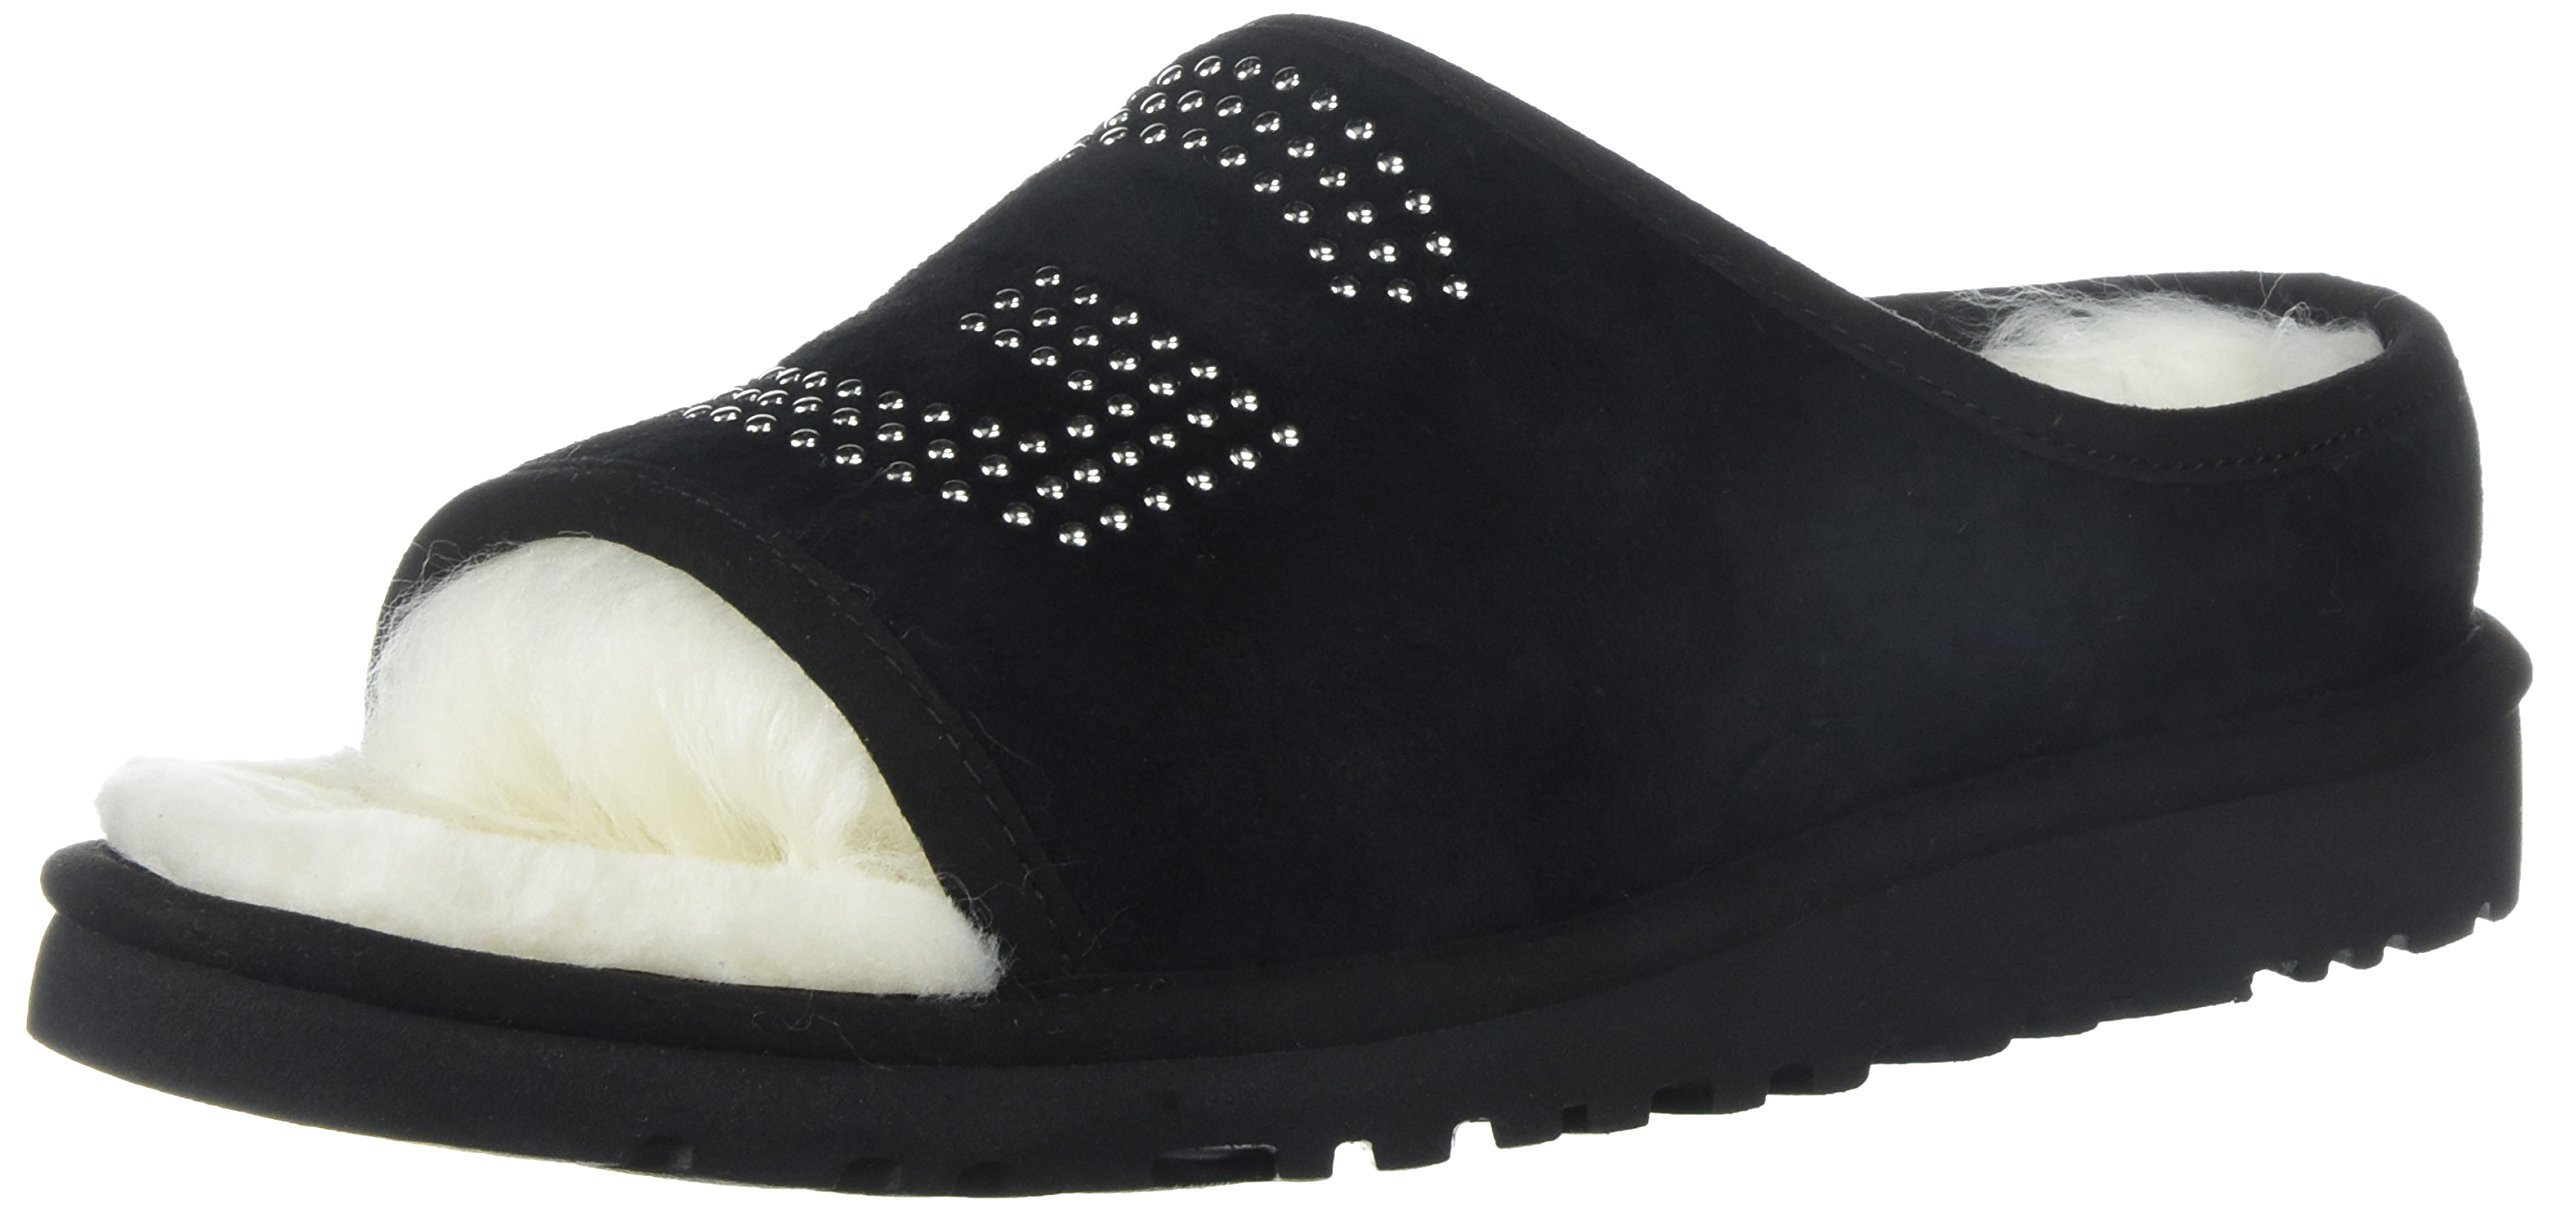 UGG Women's Slide Stud Slipper, Black, 8 M US